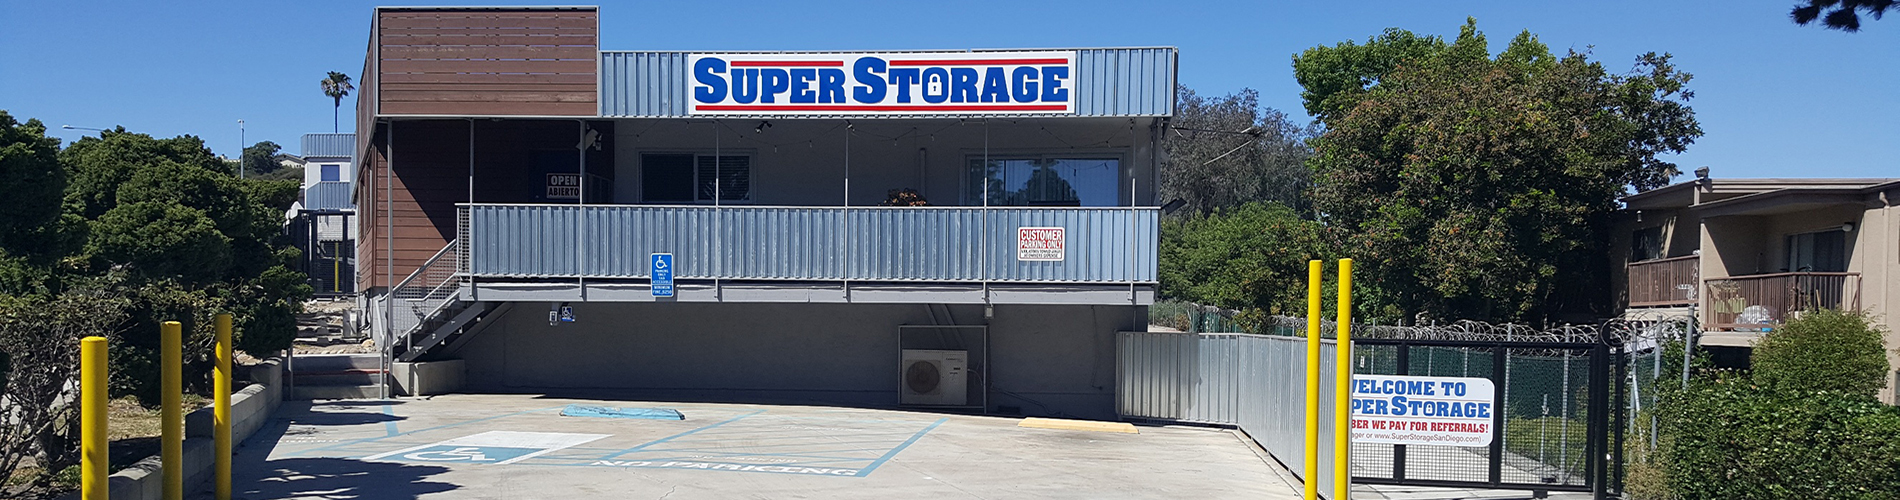 Rent your self storage today